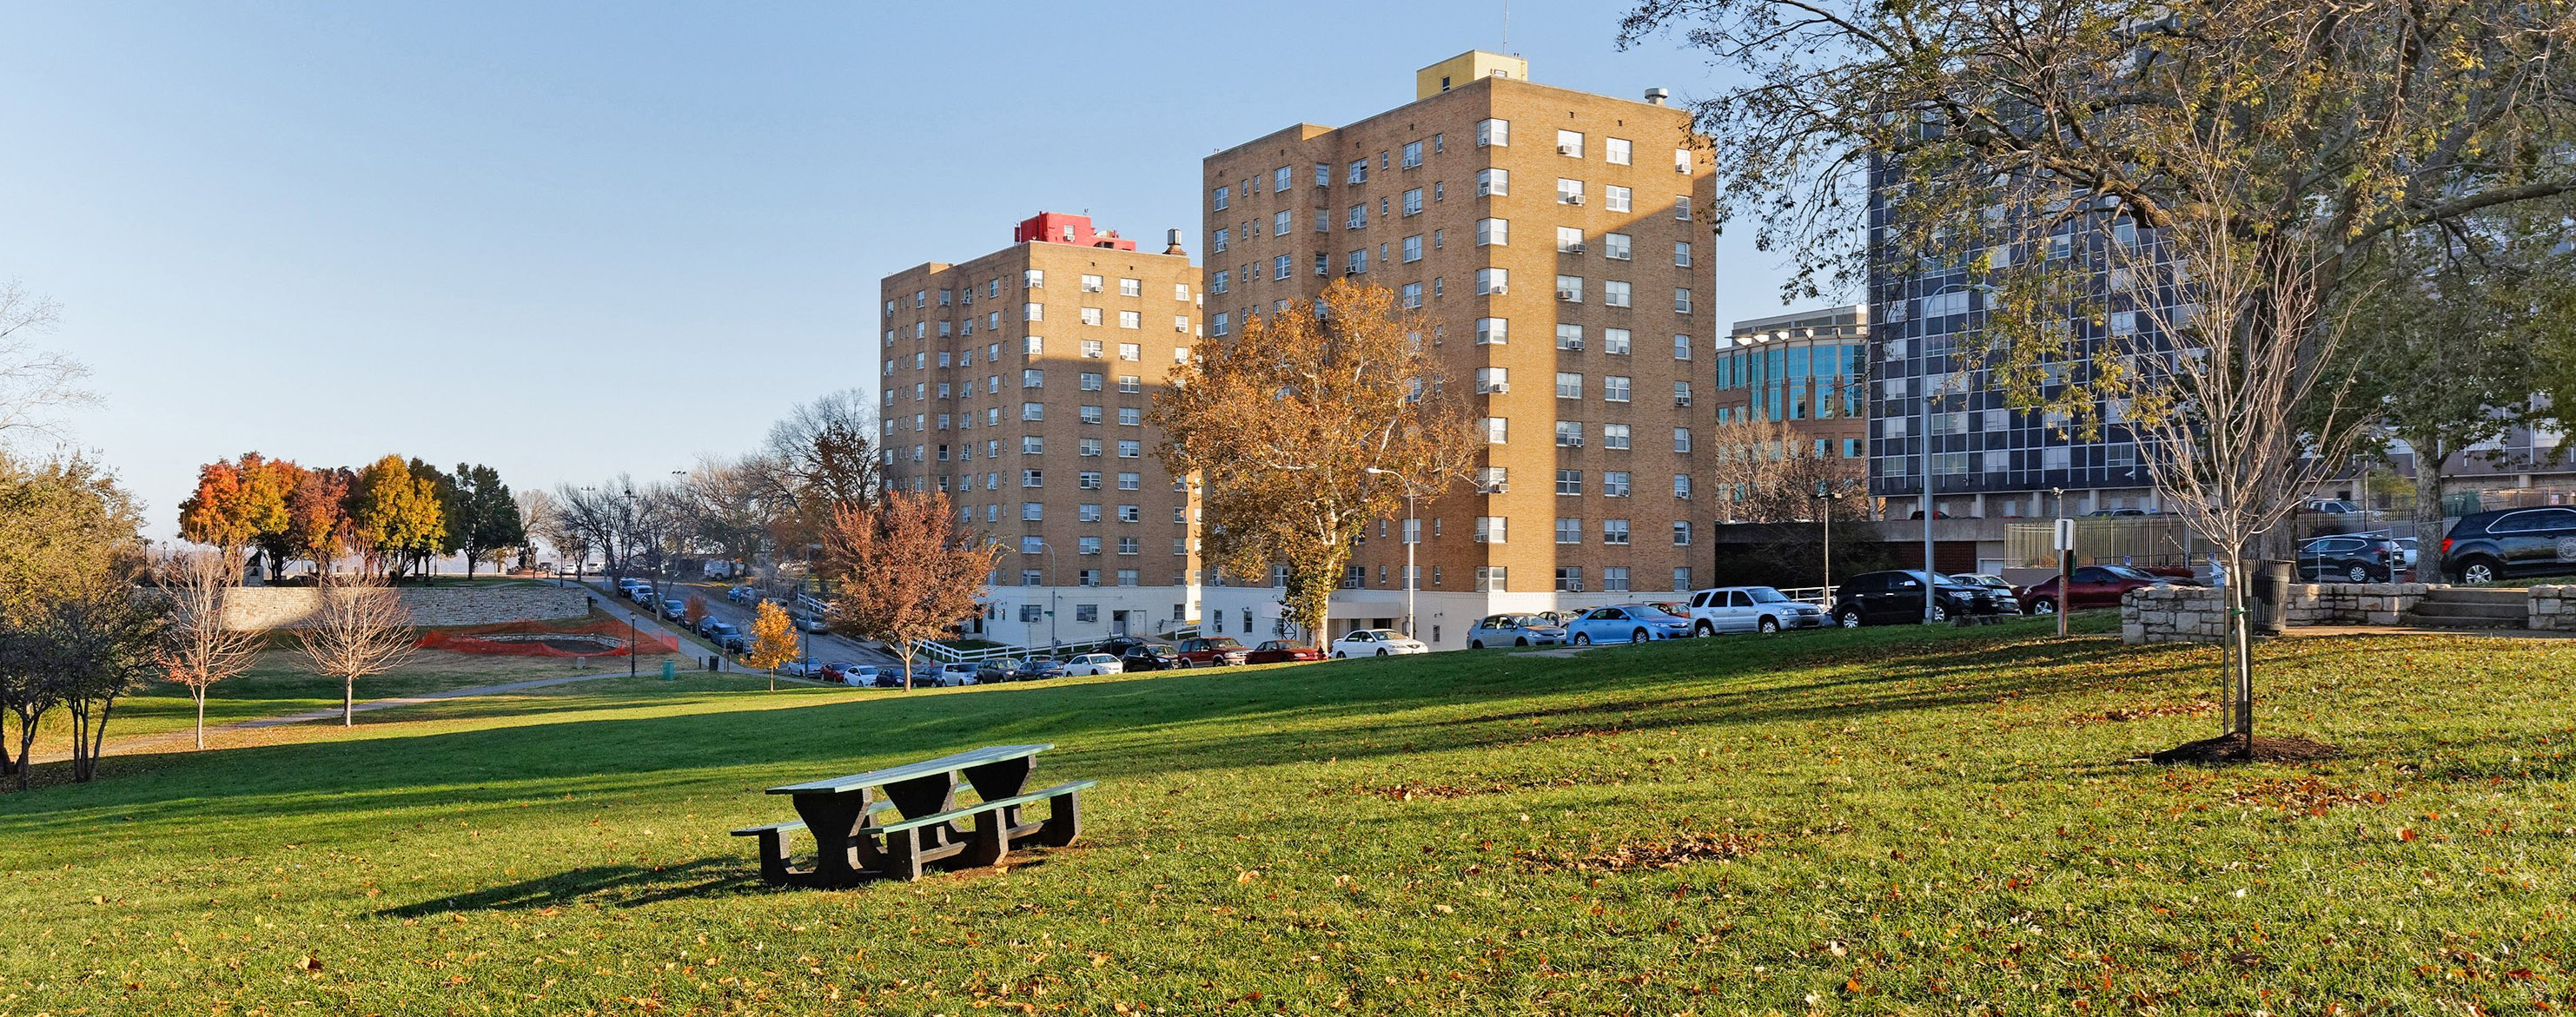 Quality Hill Towers - Exterior landscape and picnic area